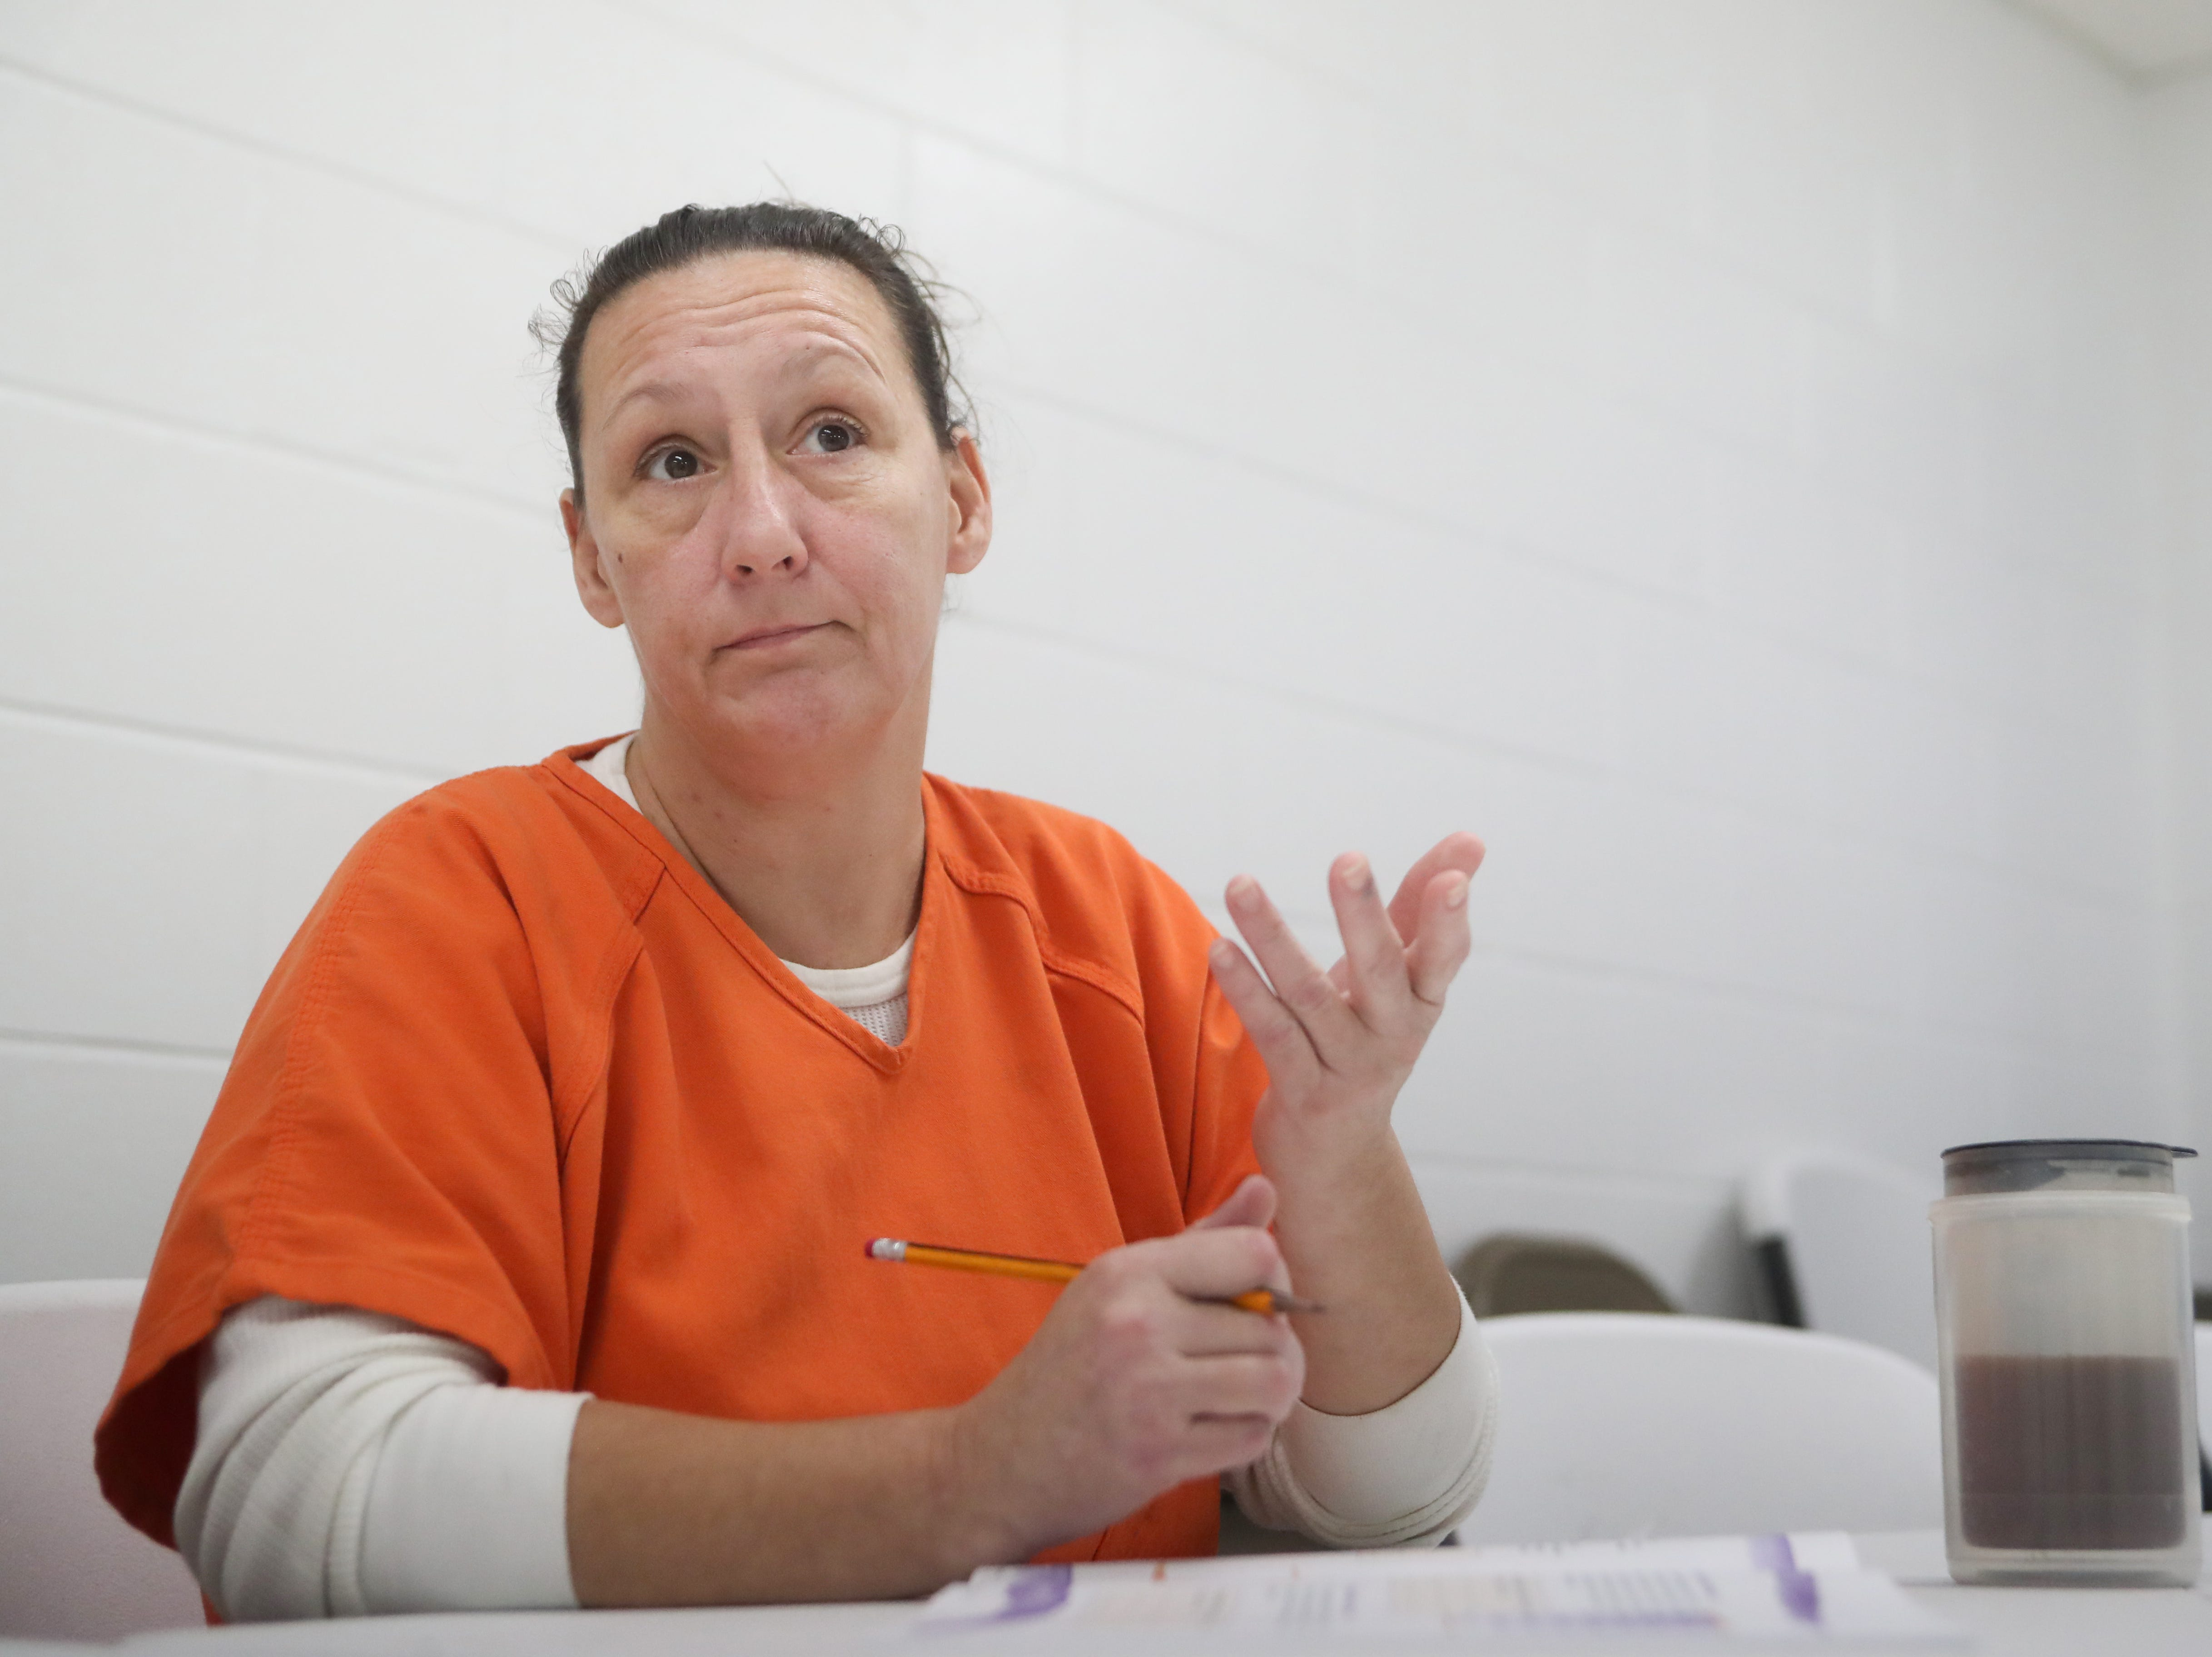 Tonya Seamon, an inmate at the Franklin County Jail, shares her experiences during a substance abuse counseling class by DISC Village at the jail in Eastpoint, Fla. Thursday, Oct. 27, 2018.